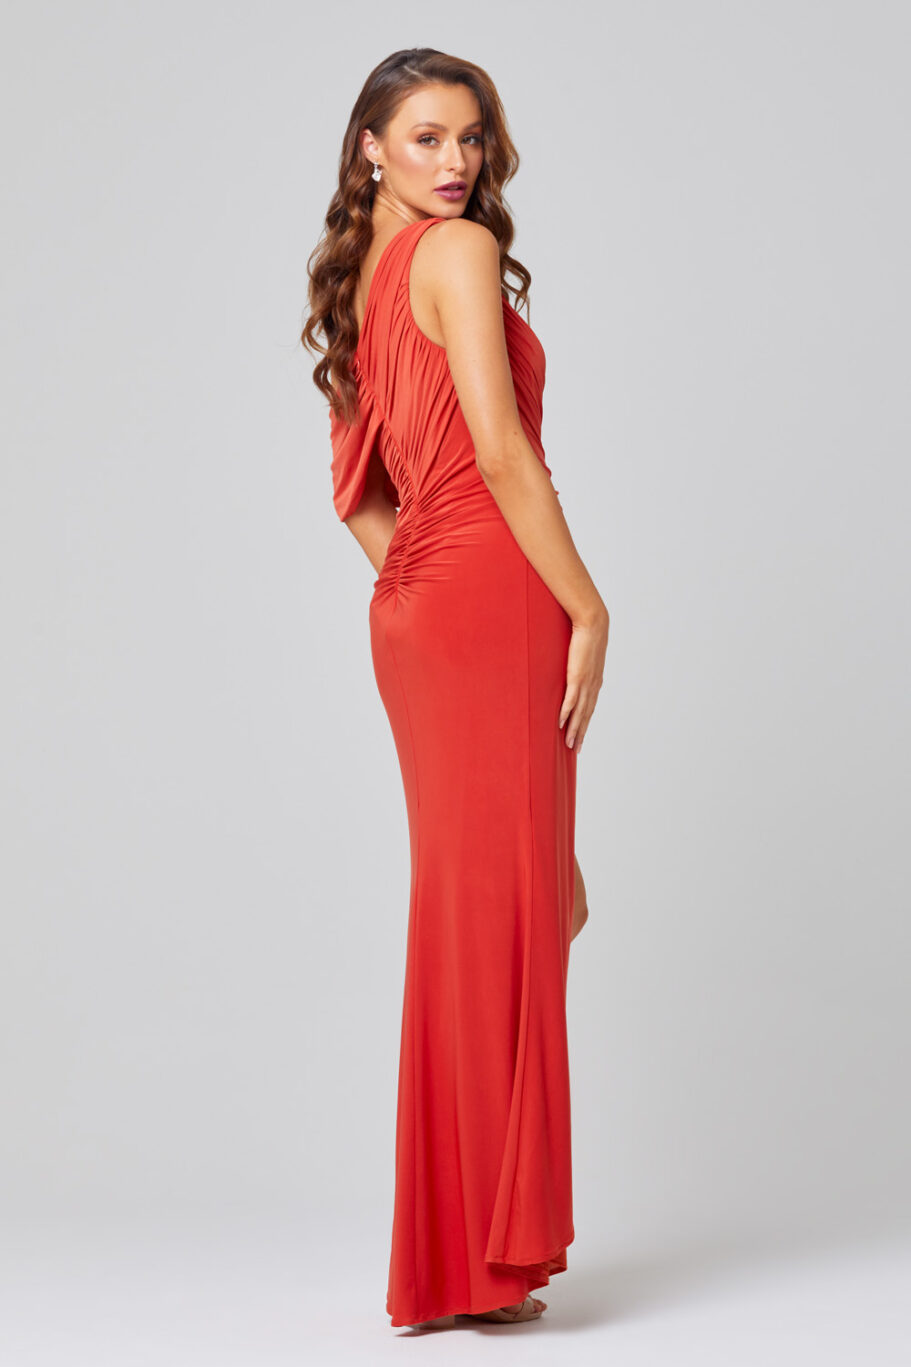 Polly One Shoulder Bridesmaid Dress – TO846 Back